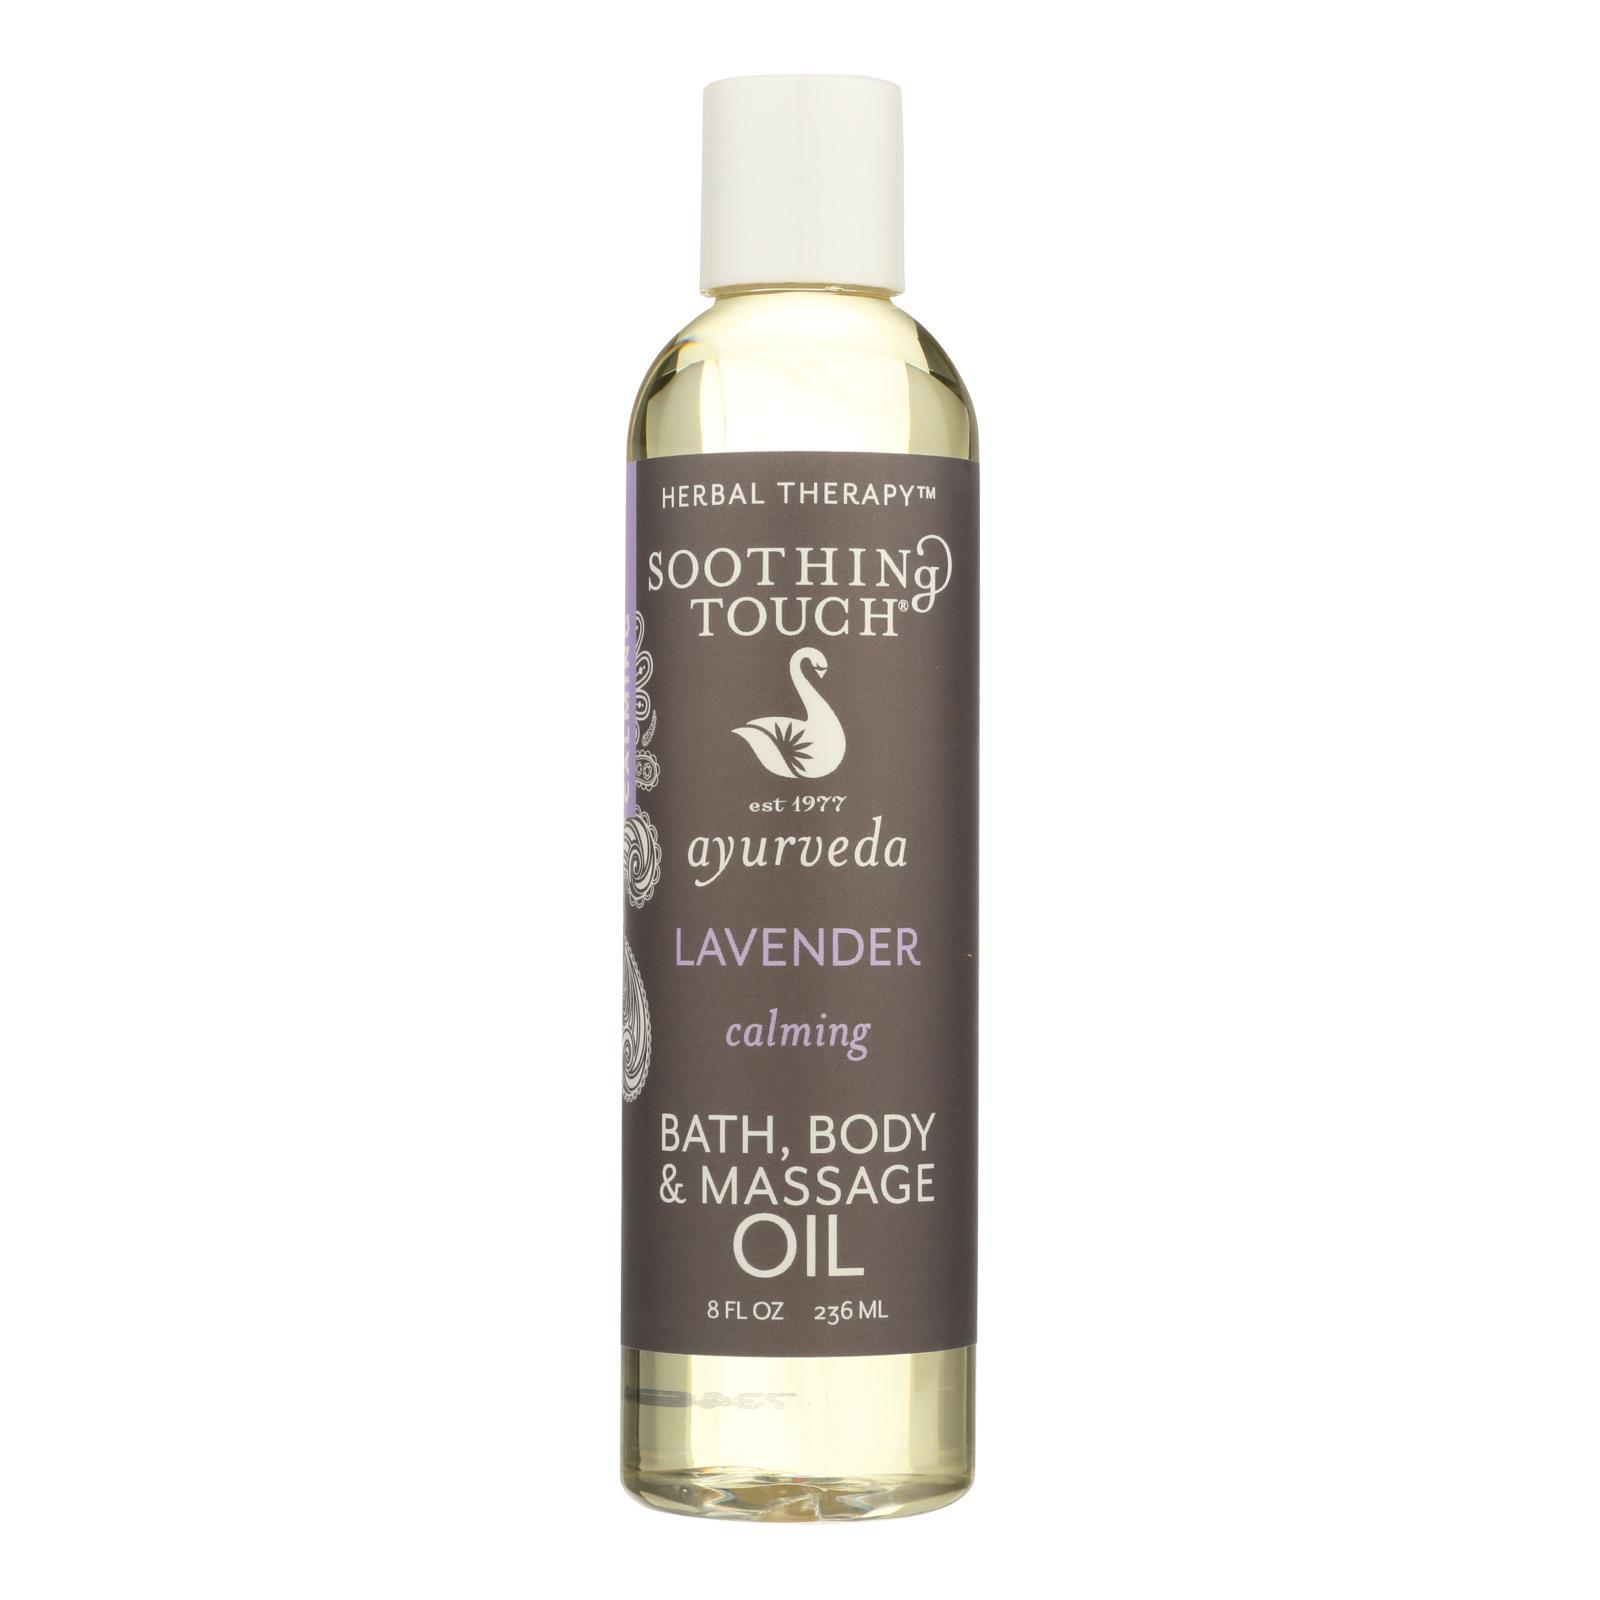 Primary image for Soothing Touch Bath and Body Oil - Lavender - 8 oz